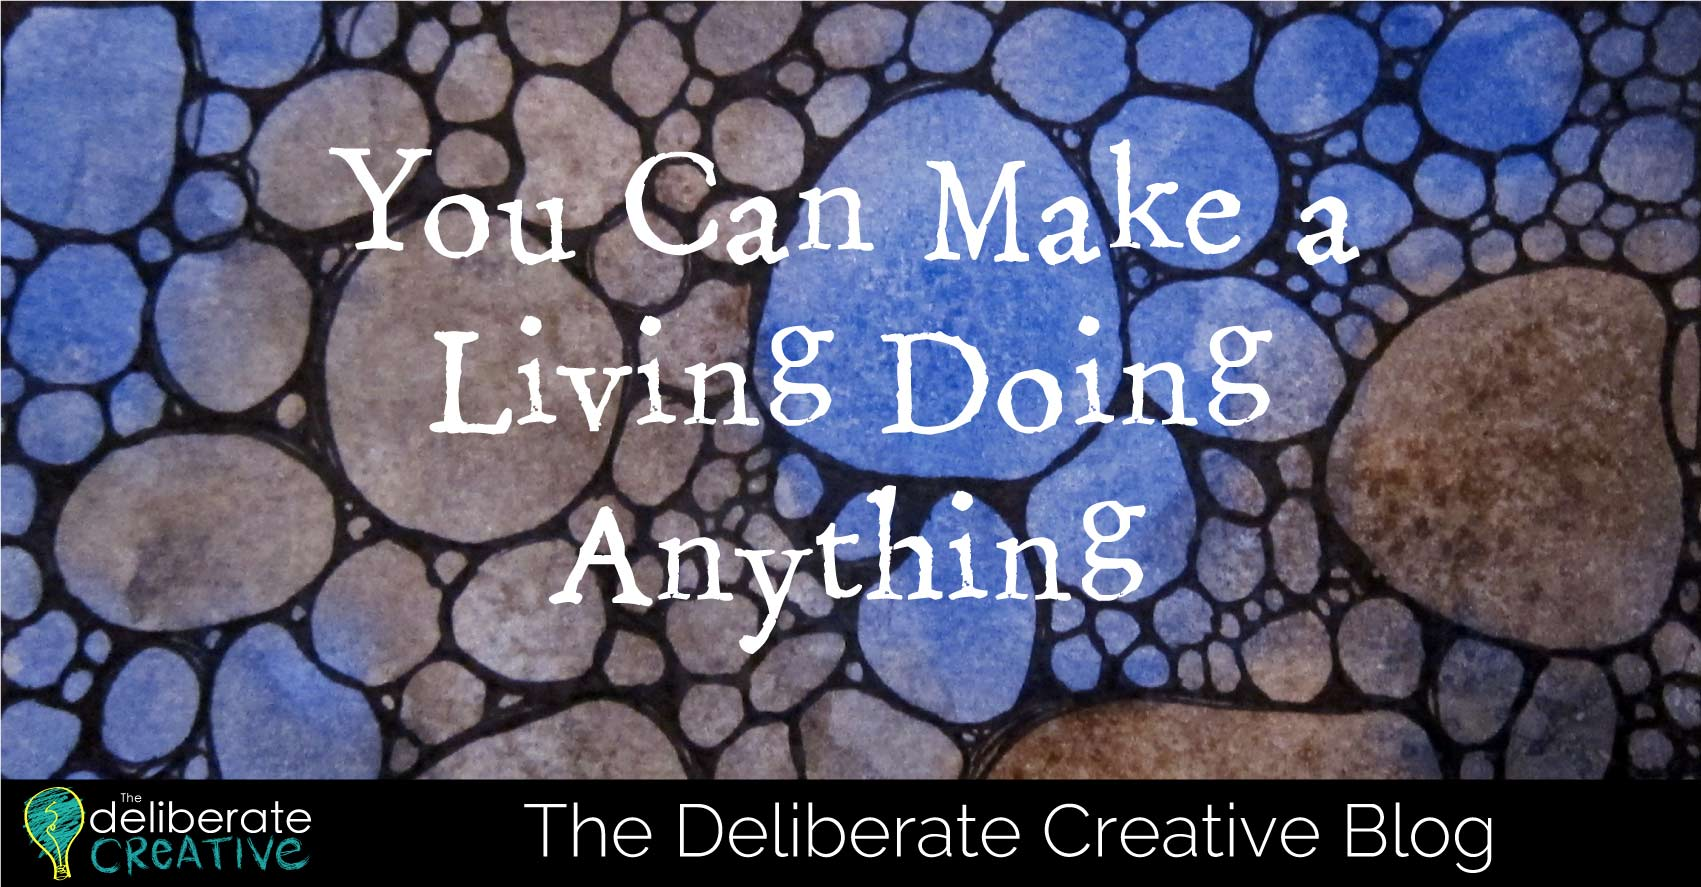 The Deliberate Creative Blog: You Can Make a Living Doing Anything